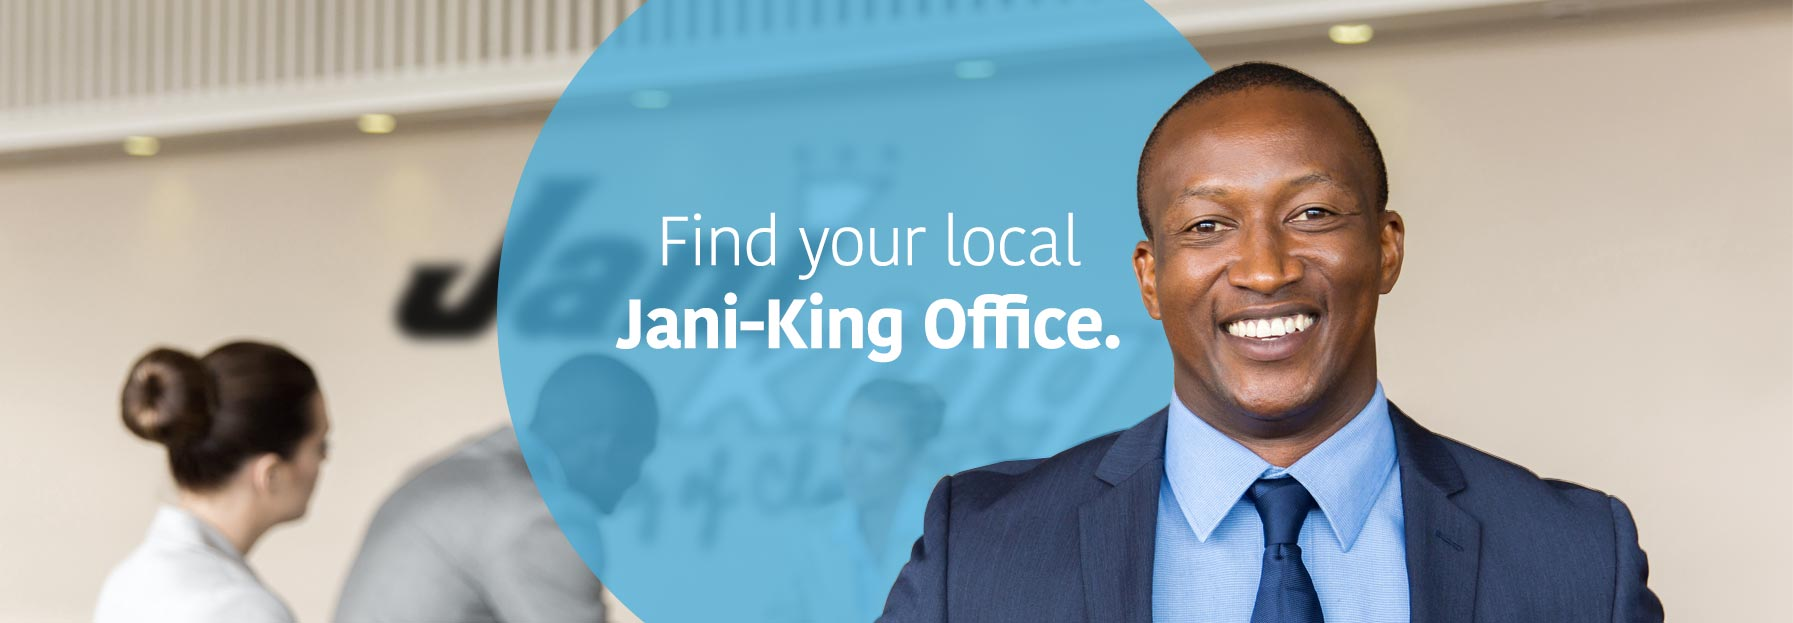 Jani-King Canada Local Offices